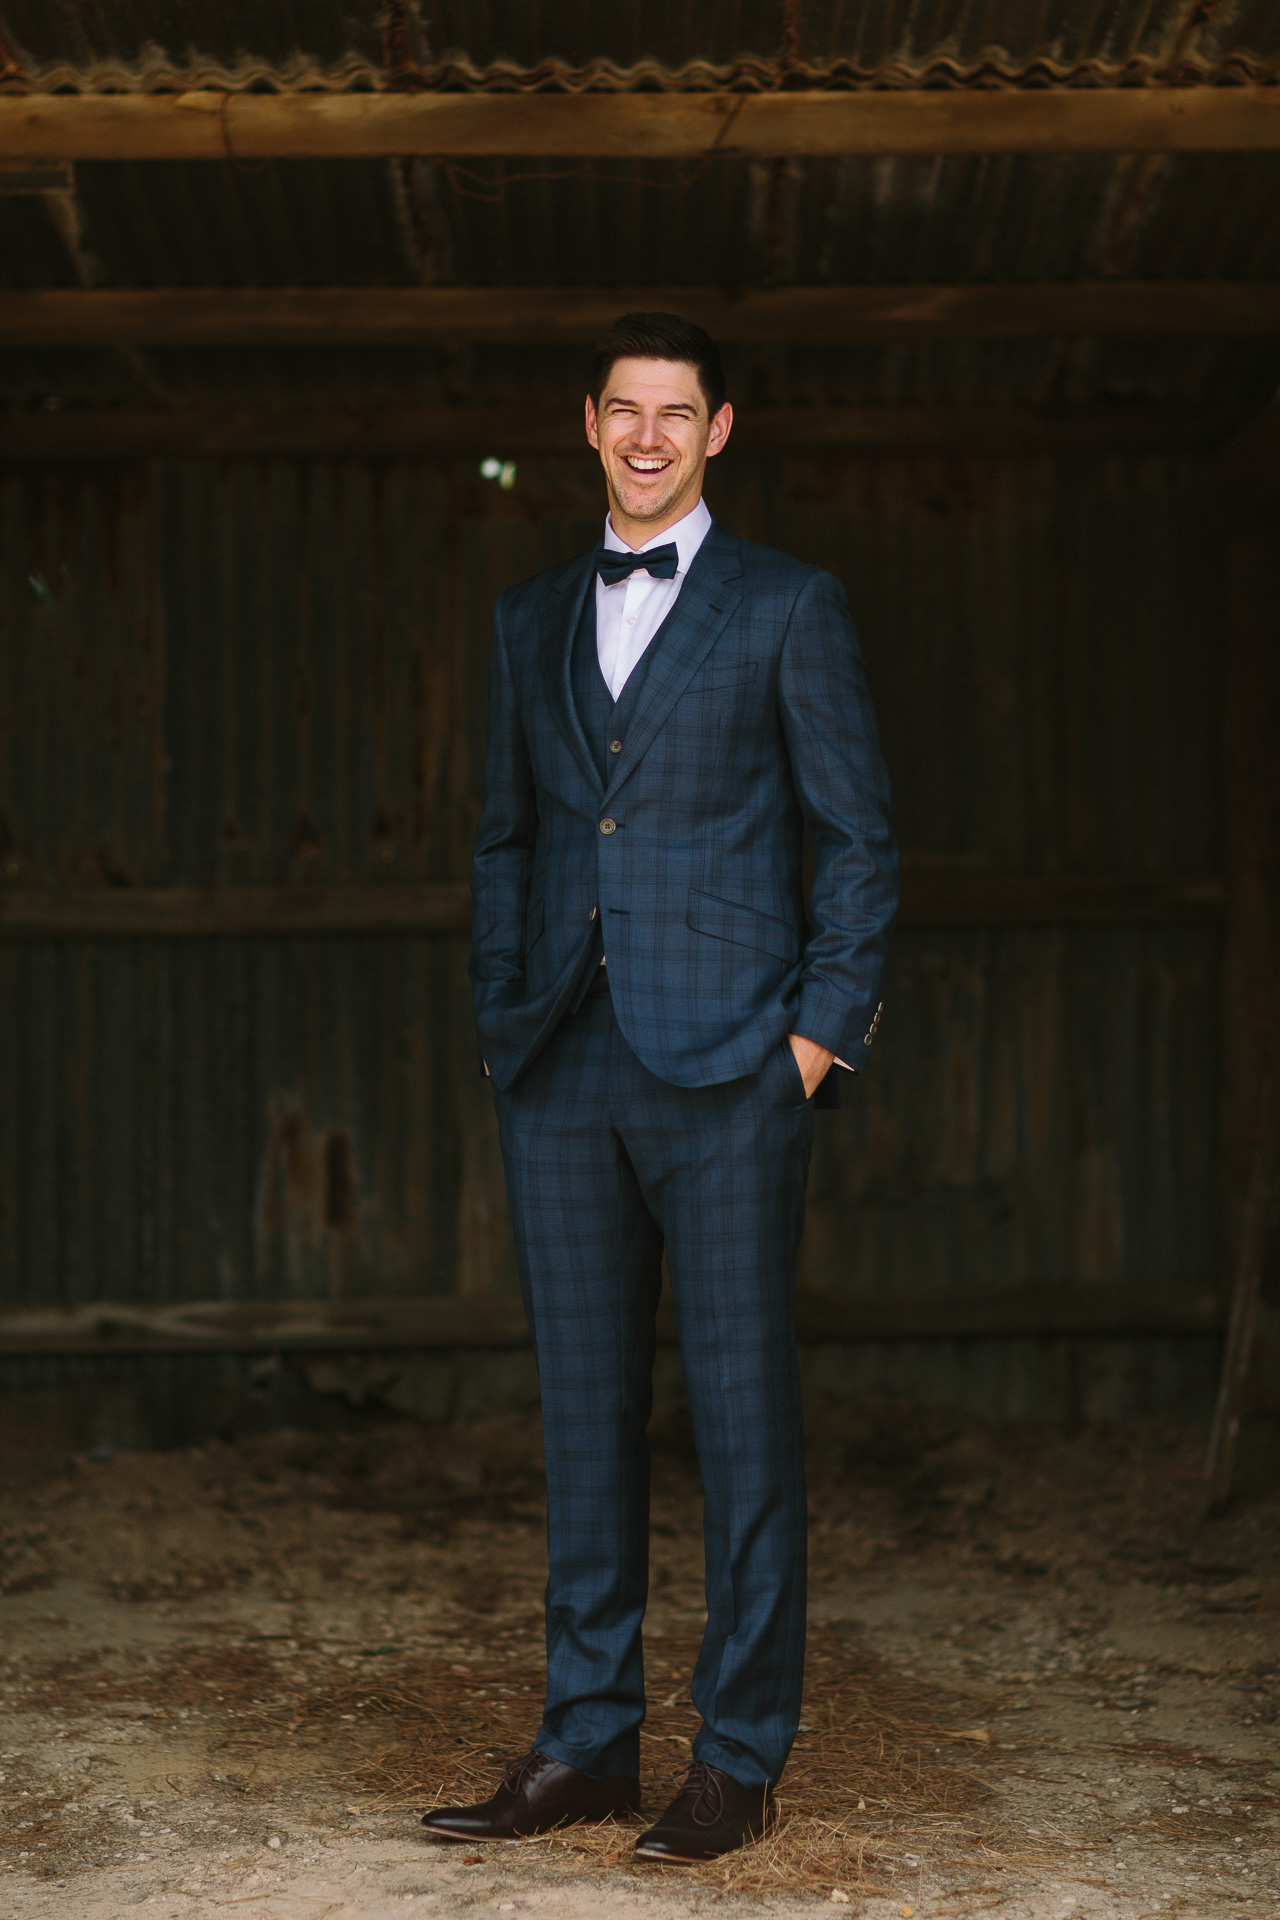 Portrait of Groom in suit before his Winery wedding at Longview vineyard